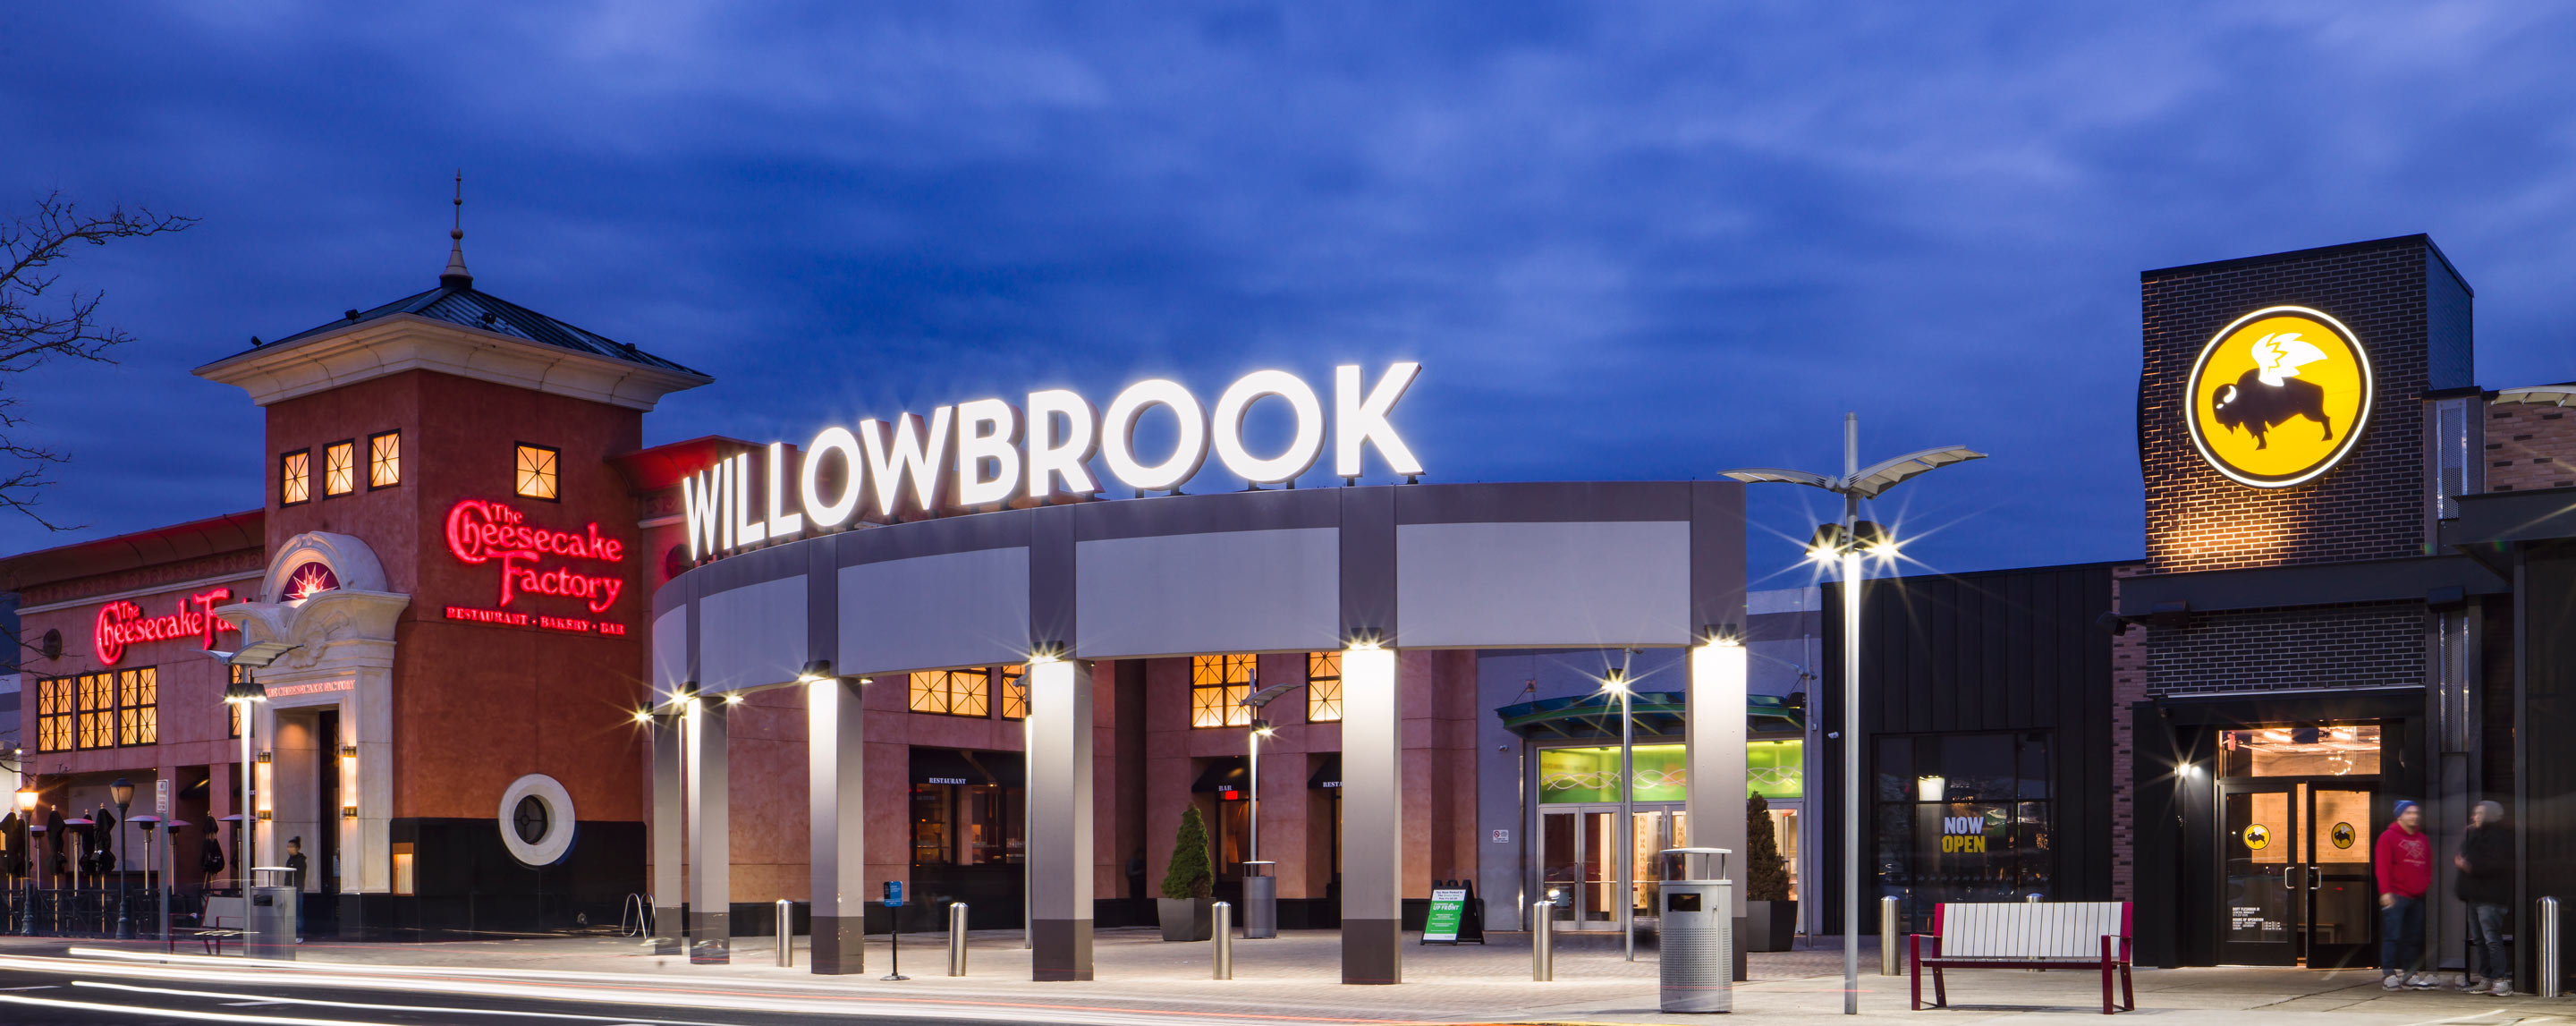 Willowbrook Entrance and Buffalo Wild Wings and Cheesecake